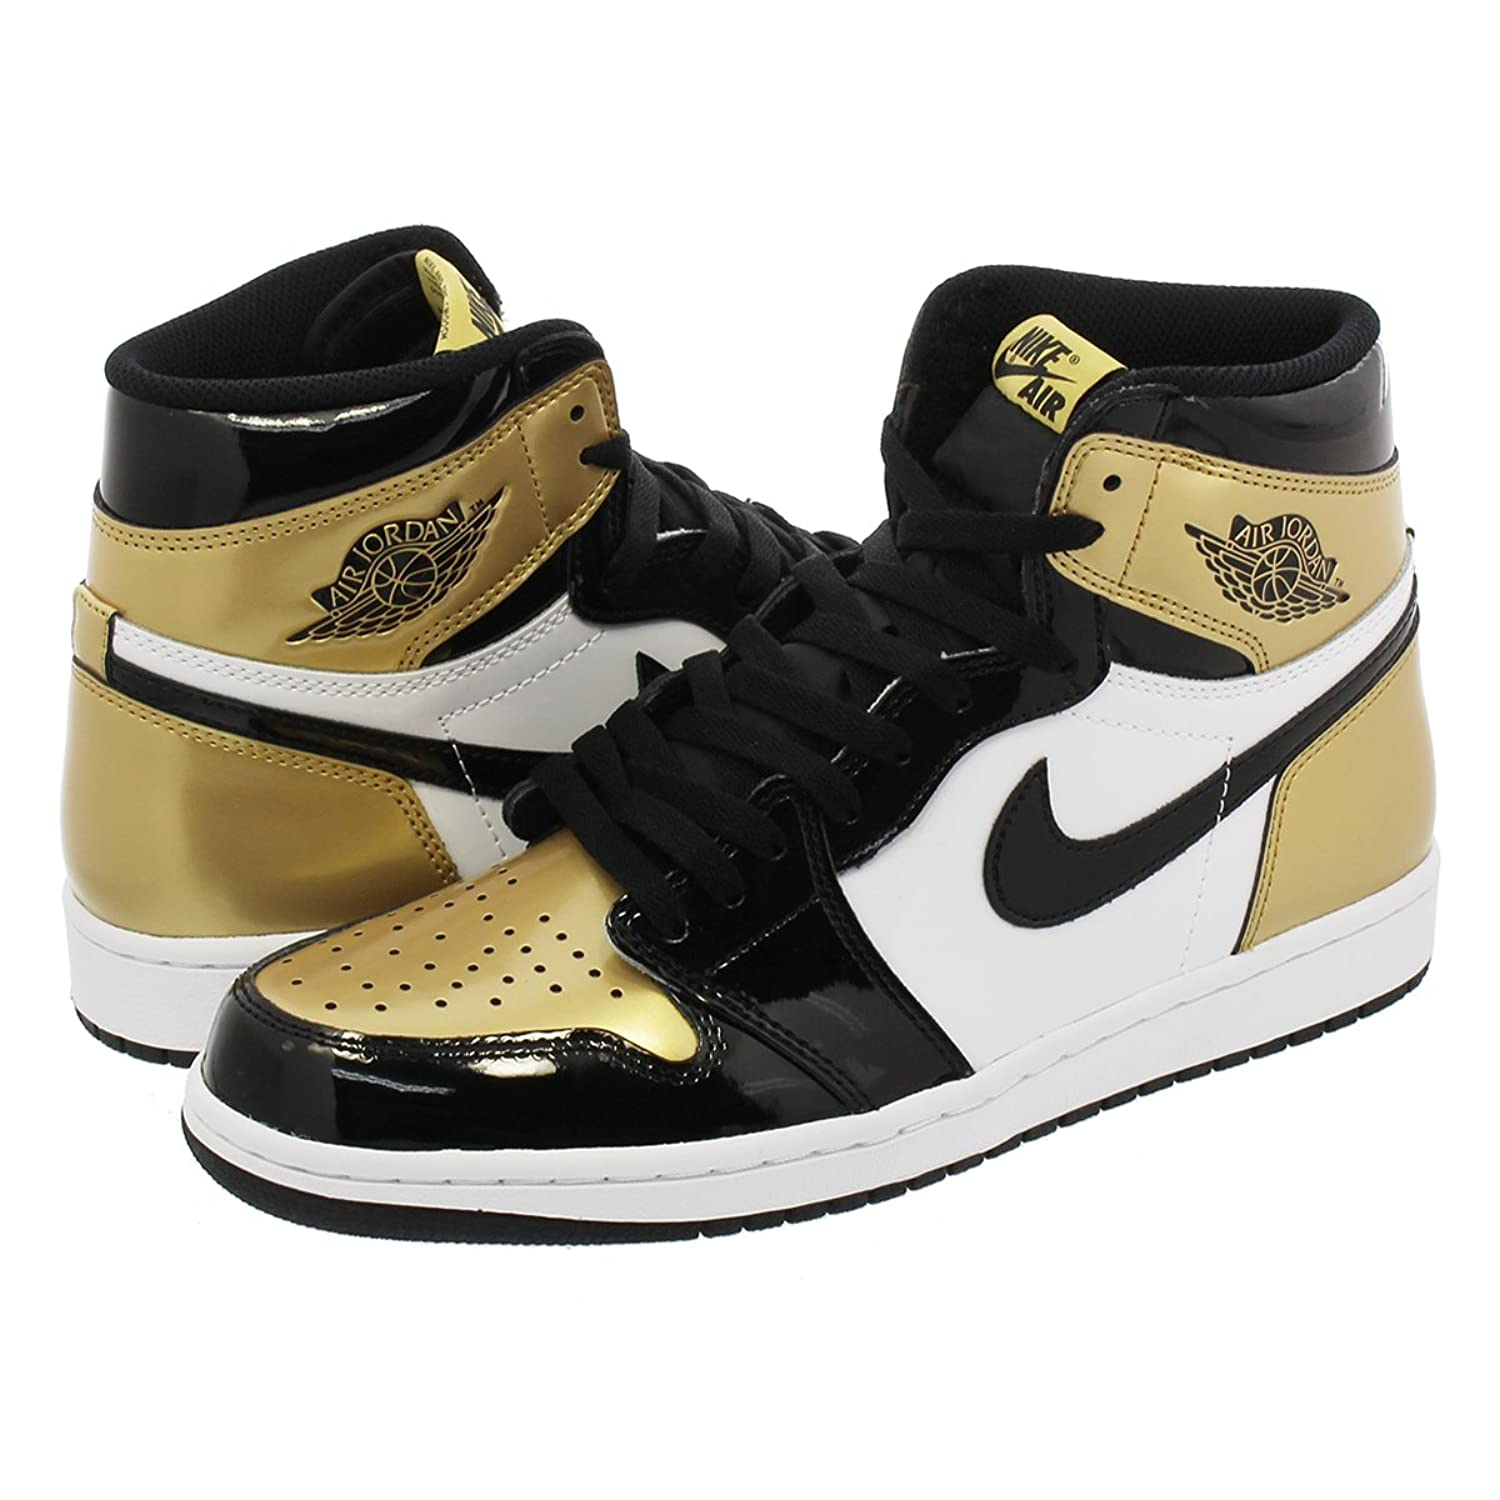 [ナイキ] NIKE AIR JORDAN 1 RETRO HIGH OG NRG BLACK/WHITE/METALLIC GOLD 【GOLD TOE】【25.0cm~28.5cm】 [並行輸入品] B07CBJ8LLR